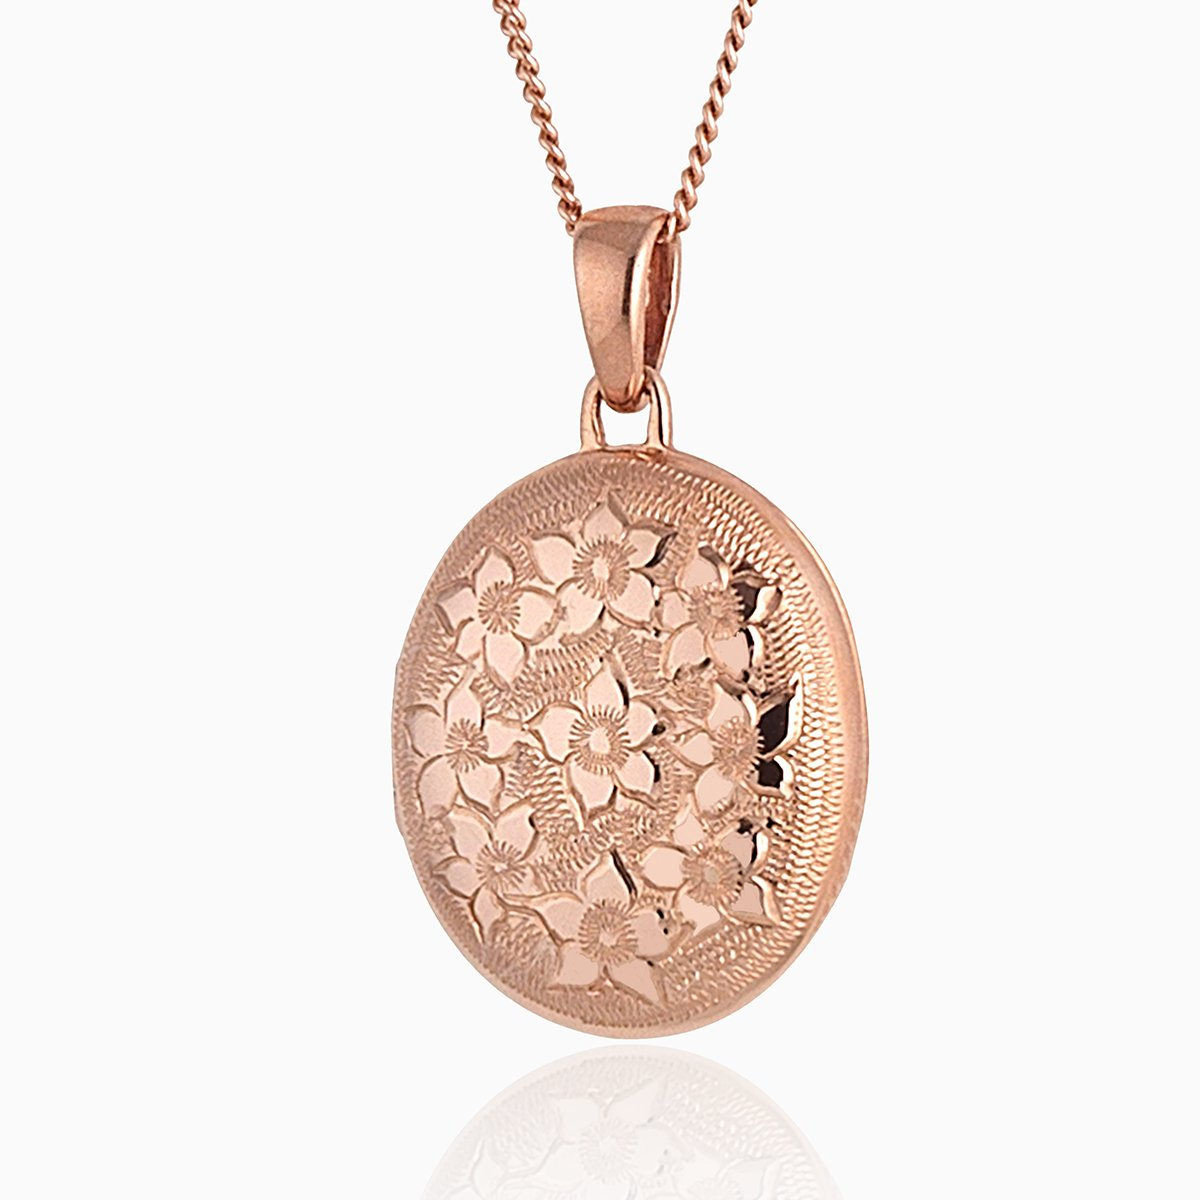 Product title: Rose Gold Floral Oval Locket, product type: Locket